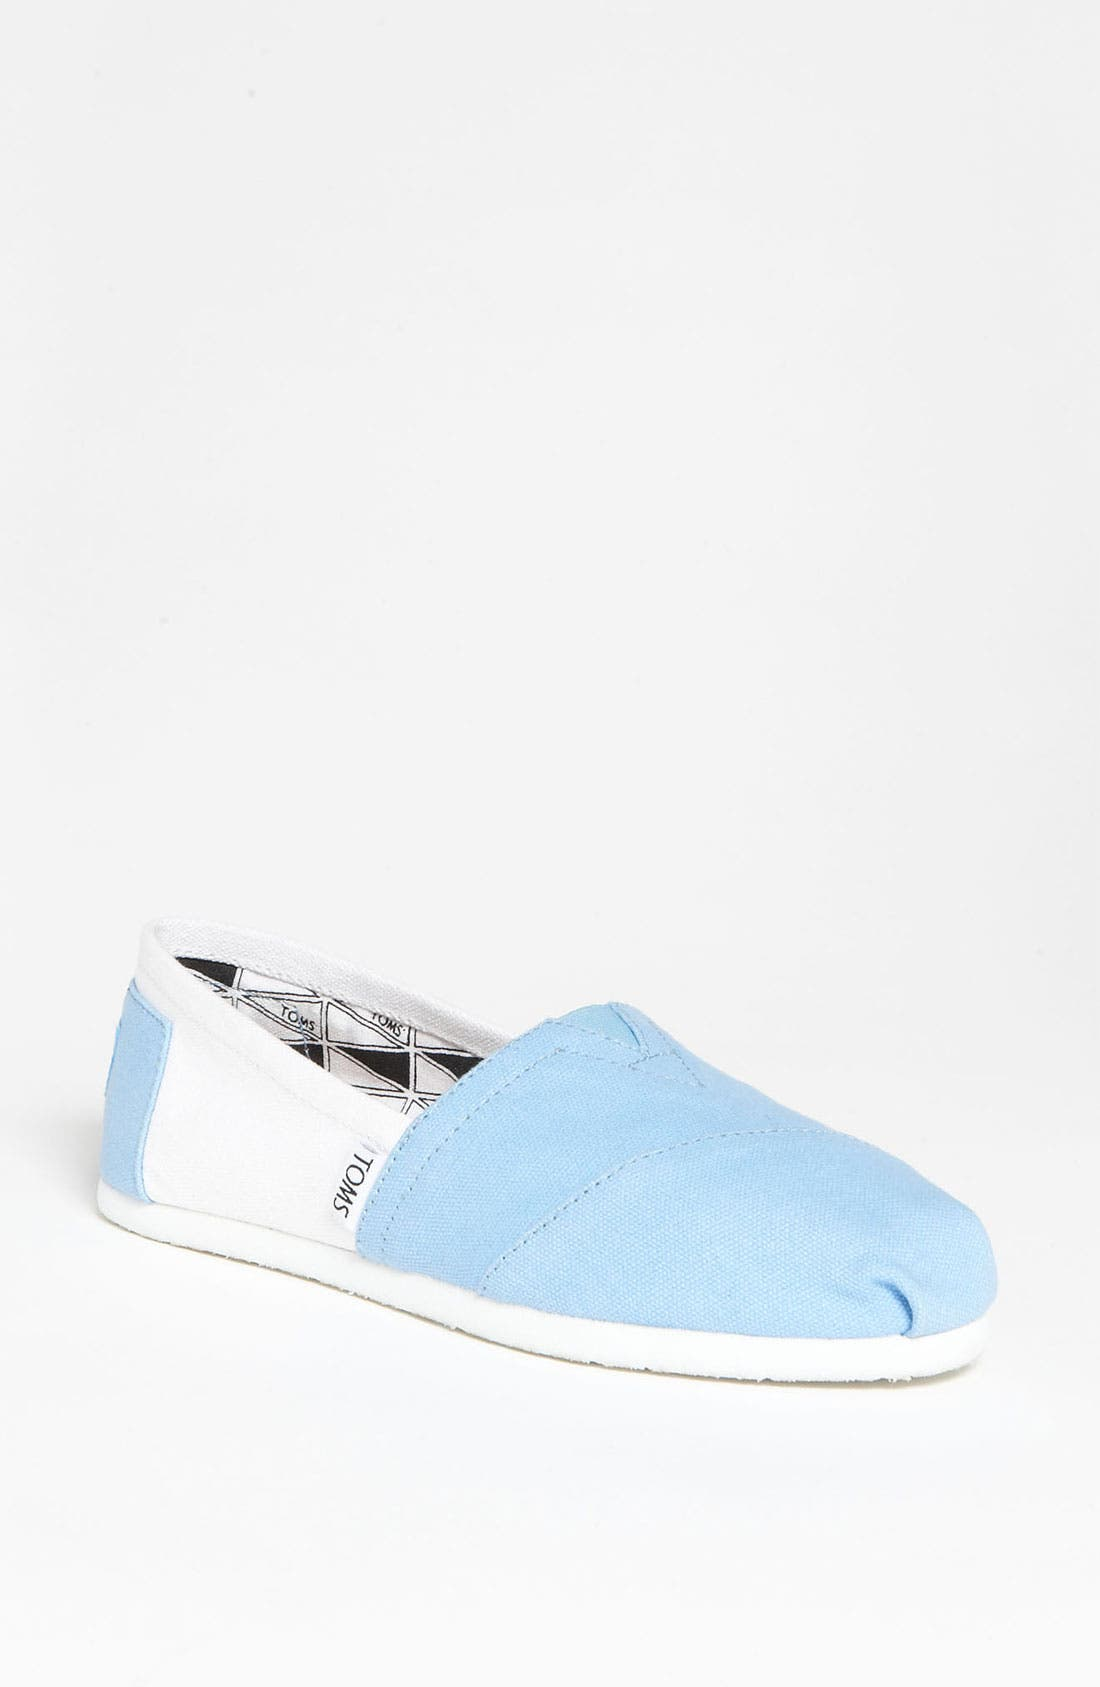 Alternate Image 1 Selected - TOMS 'Campus Classics - UNC' Slip-On (Women)